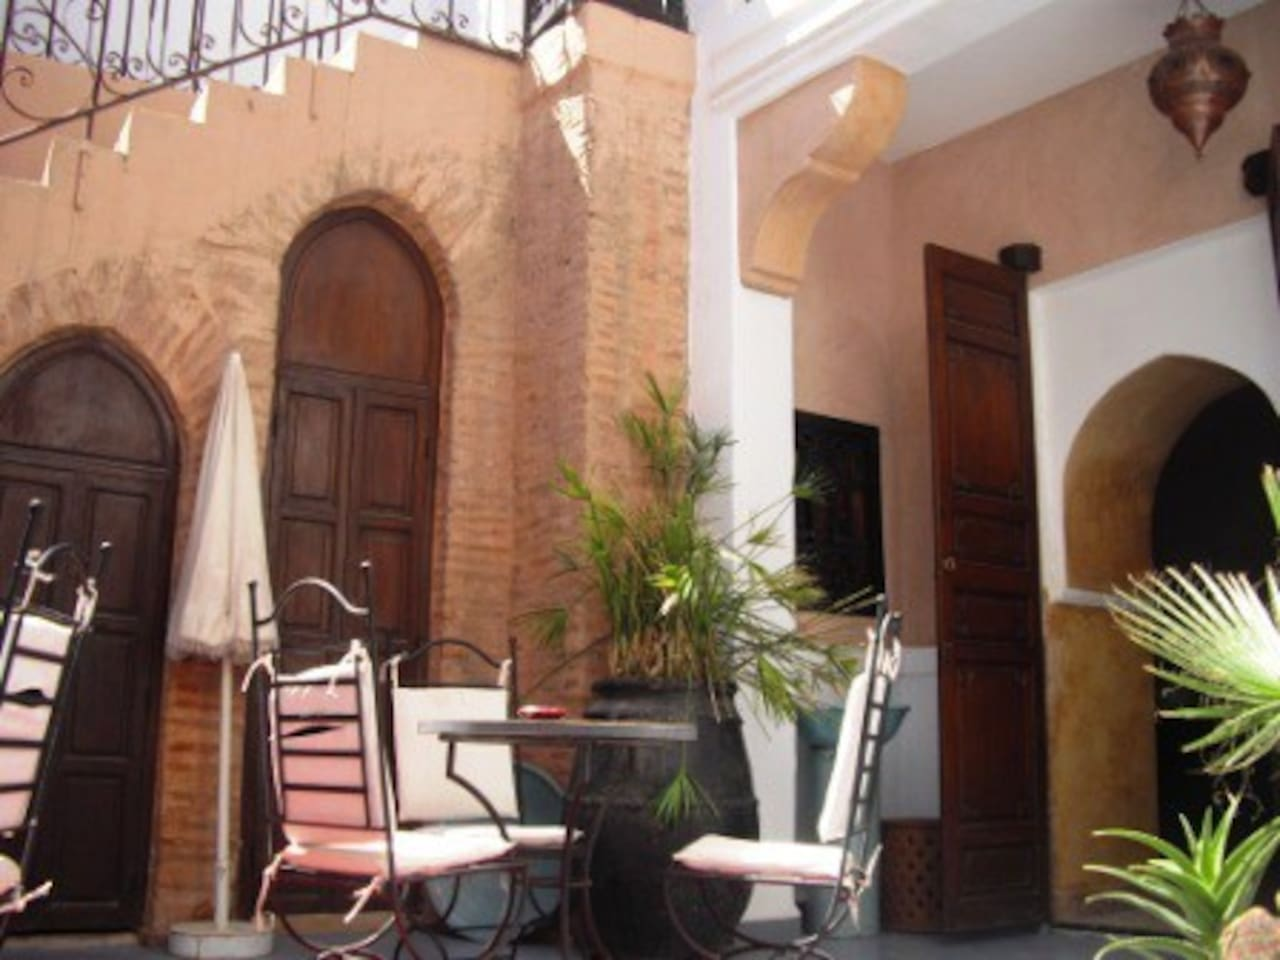 Bed and Breakfast in a Riad.